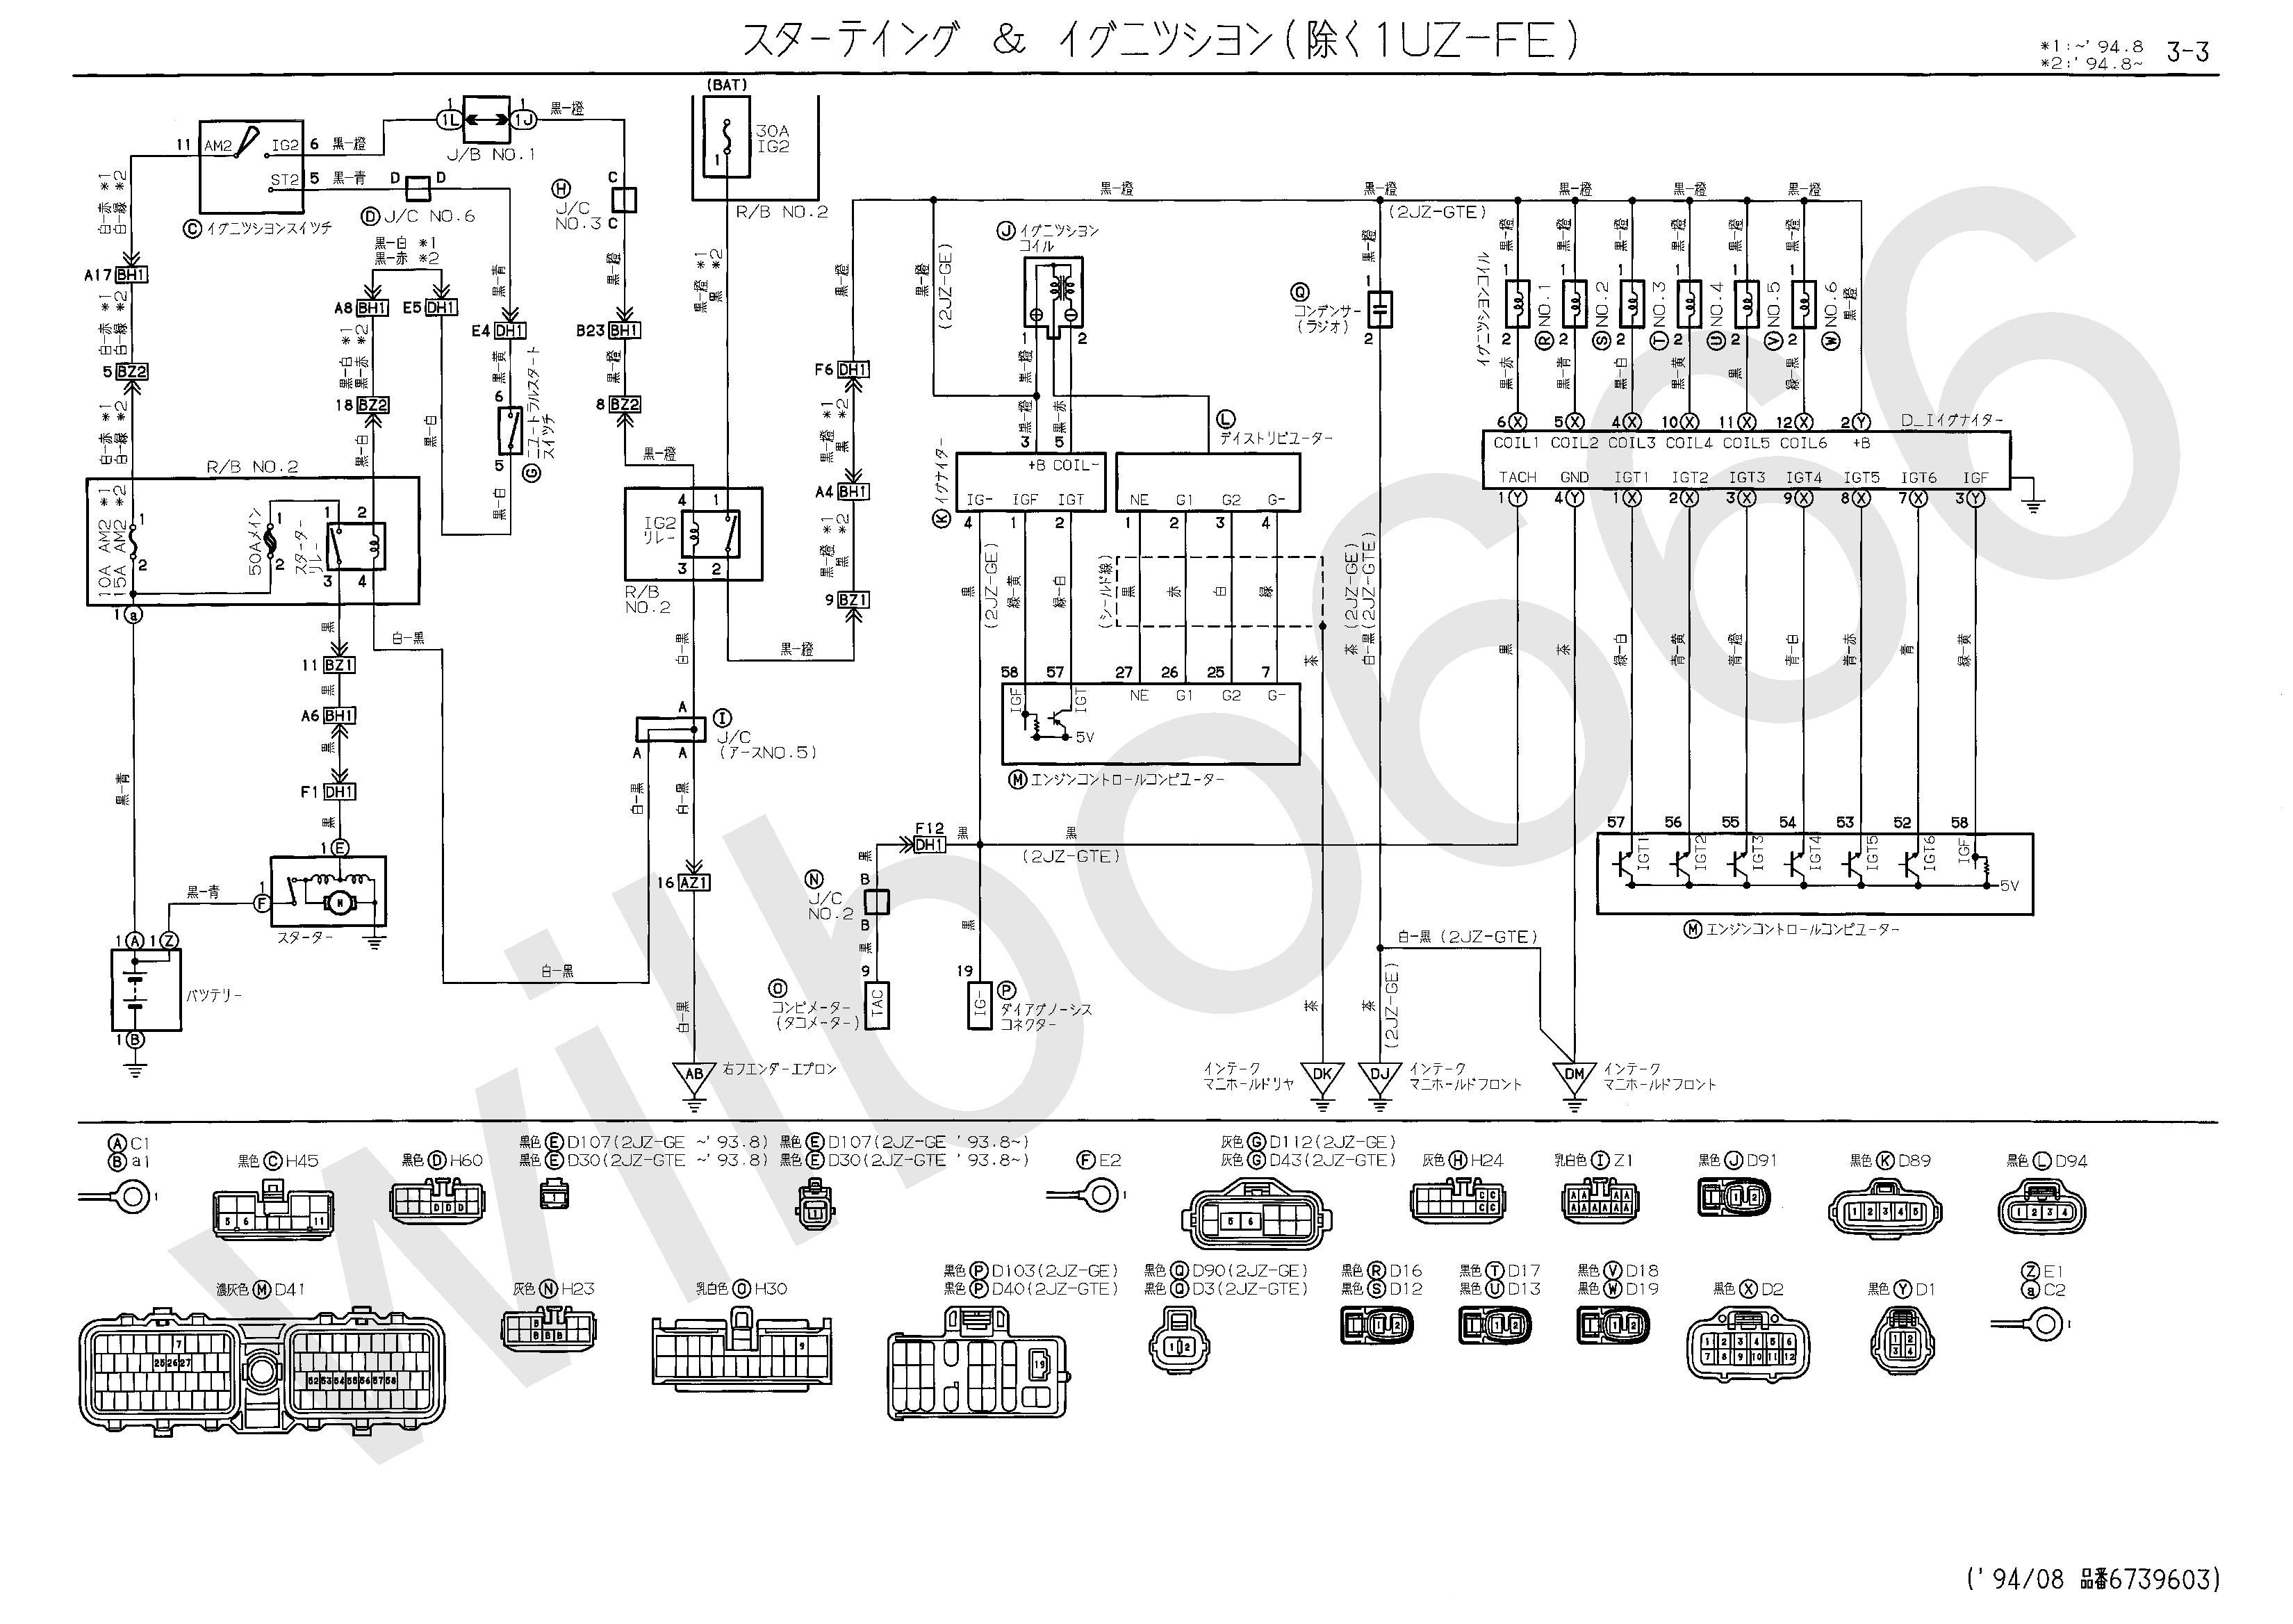 JZS14%23%2C UZS14%23 Electrical Wiring Diagram 6739604 3 3 2jz wiring diagram basic home electrical wiring diagrams \u2022 wiring 2jzgte wiring harness made easy at virtualis.co